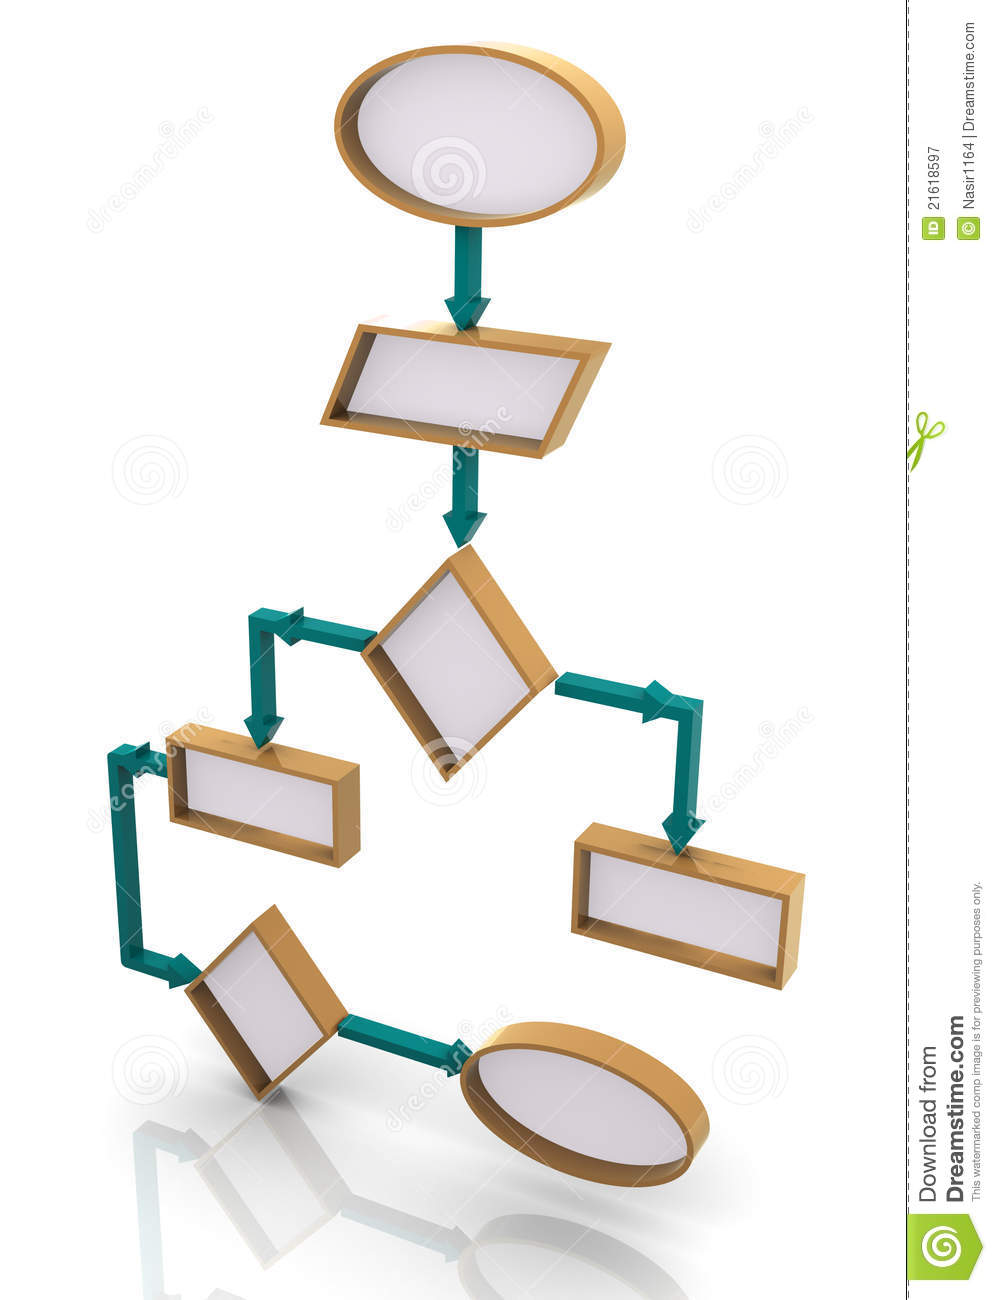 3d program flow chart royalty free stock photography image 21618597 for 3d flow chart